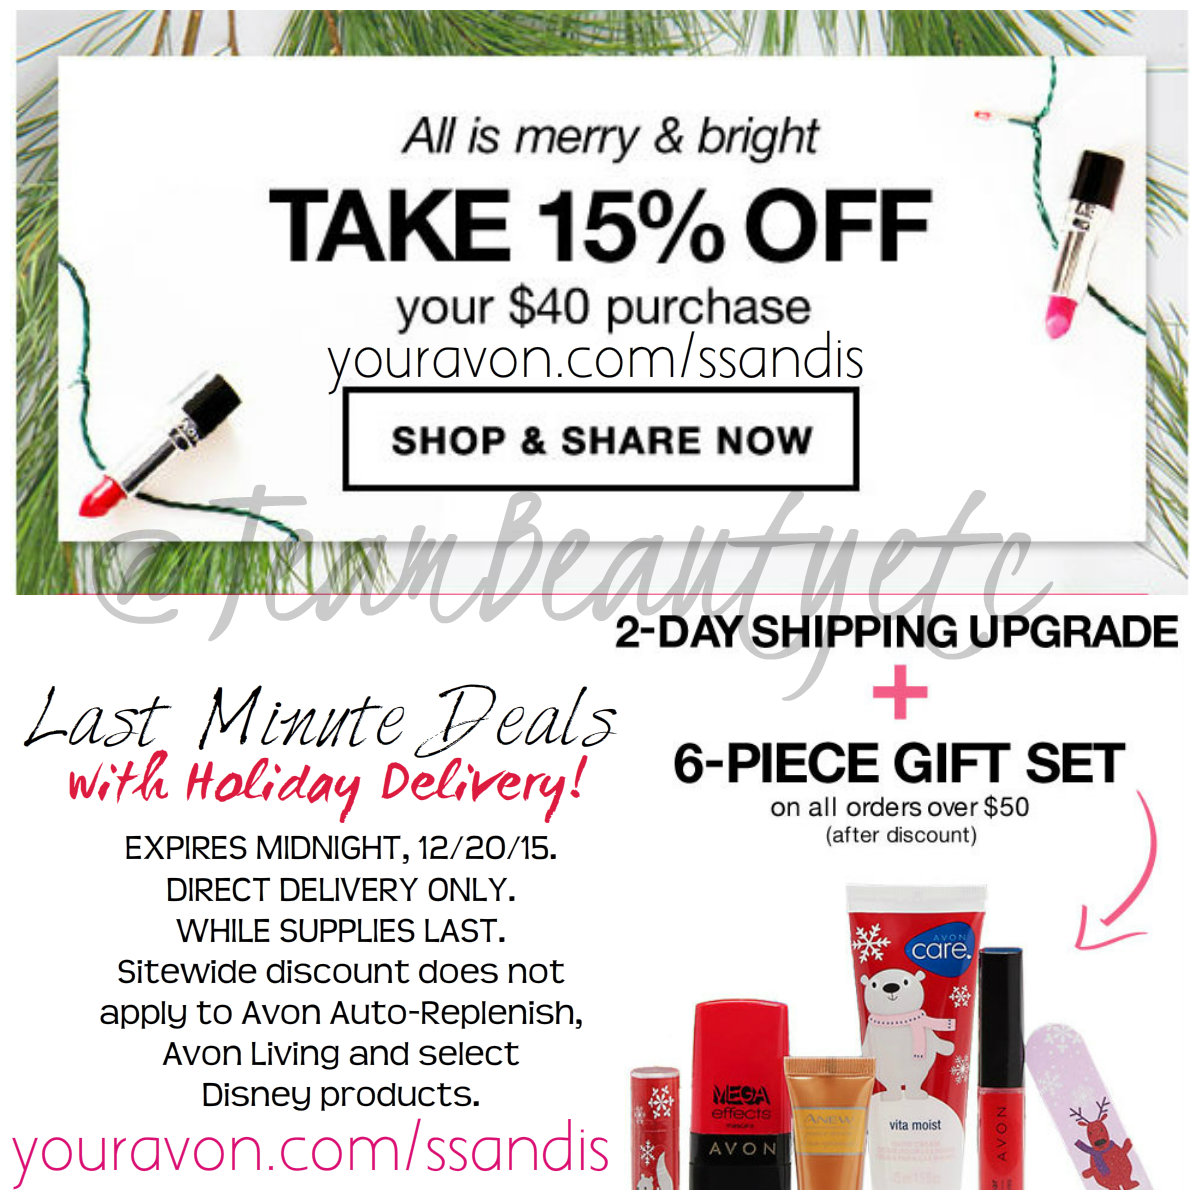 0bdb3a8d9 FREE 2-Day Shipping upgrade. FREE 6-pc Merry Makeup Set with all orders of   50+ after discounts 15% off all orders of  40+. Use Code  EXPEDITE